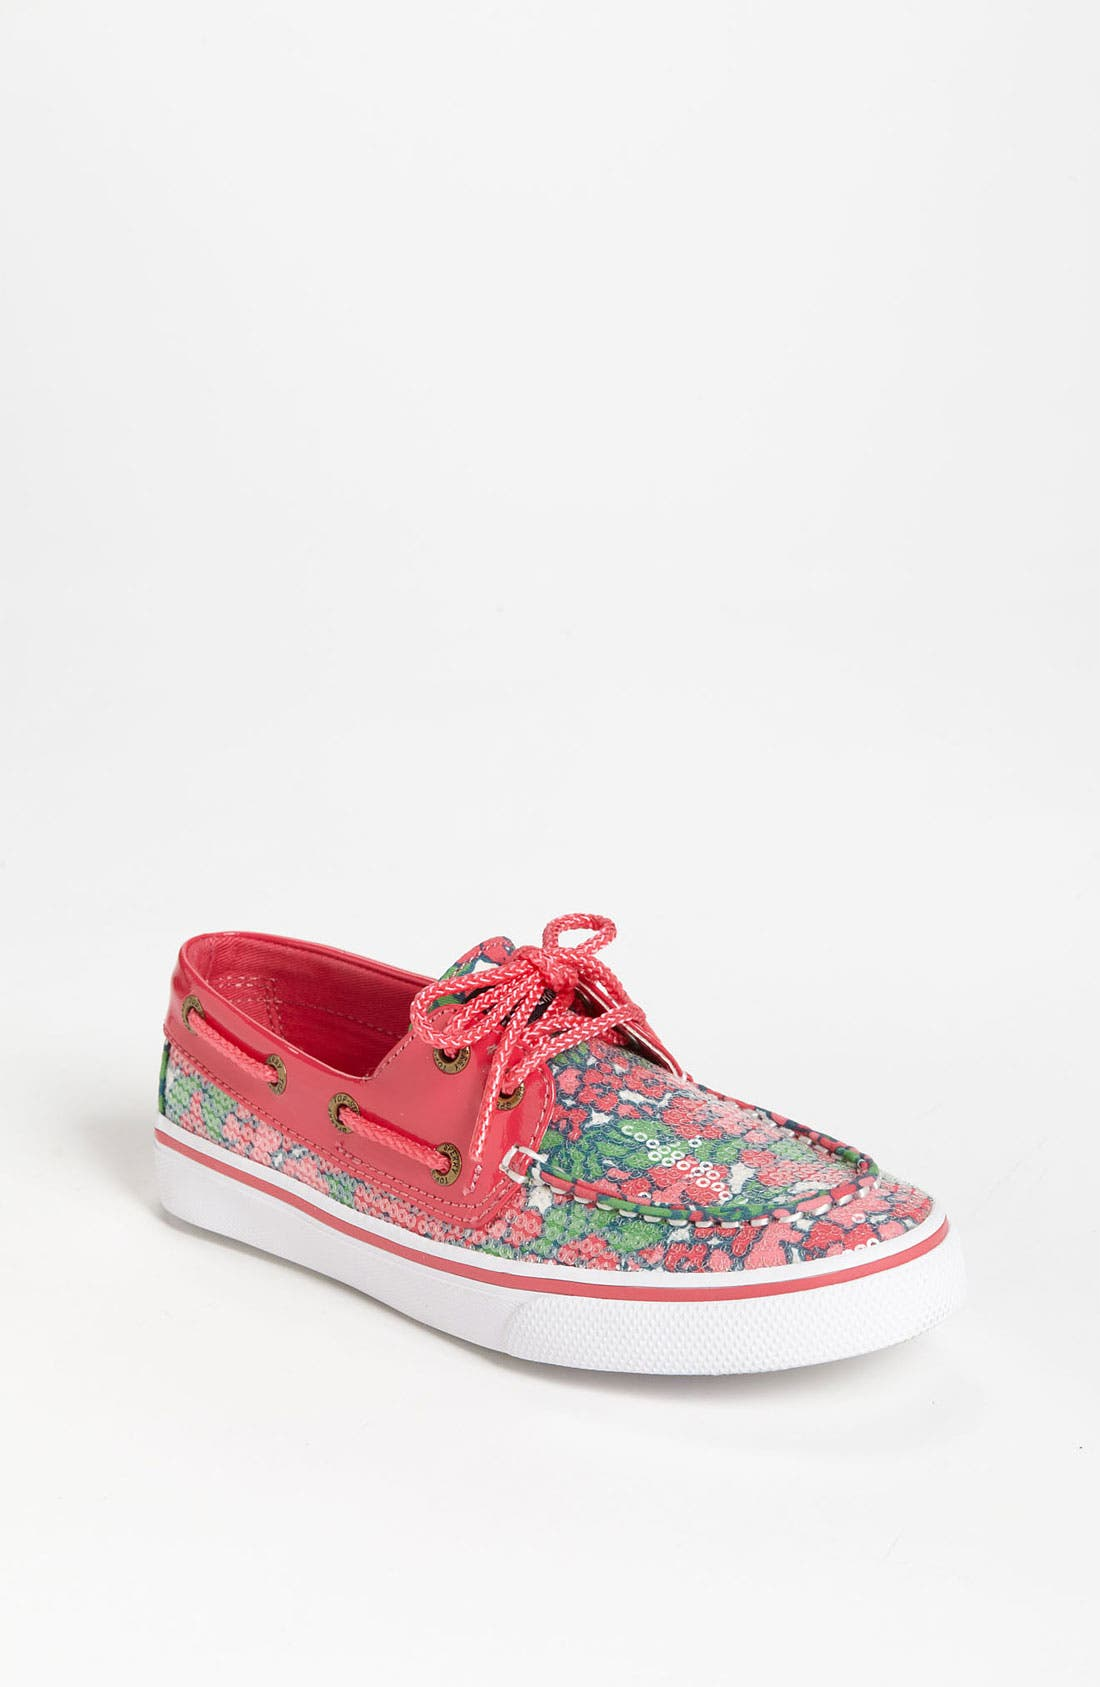 Alternate Image 1 Selected - Sperry Top-Sider® 'Bahama' Slip-On (Walker, Toddler, Little Kid & Big Kid)